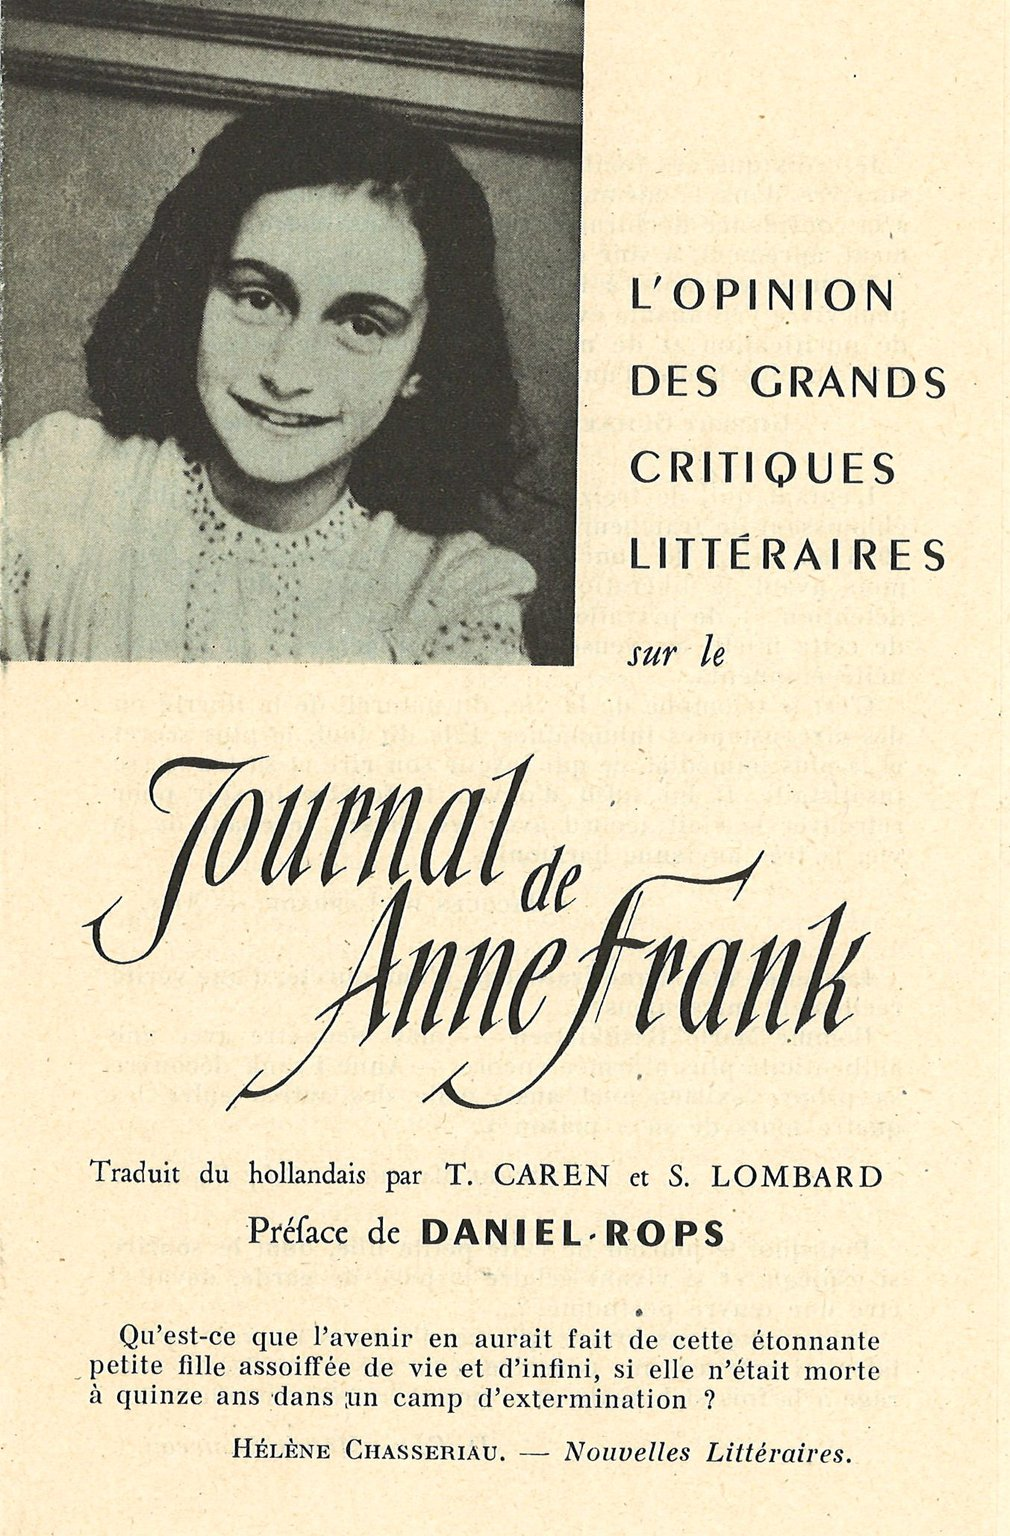 Brochure from 1951 in which French critics give their opinion of the diary of Anne Frank.